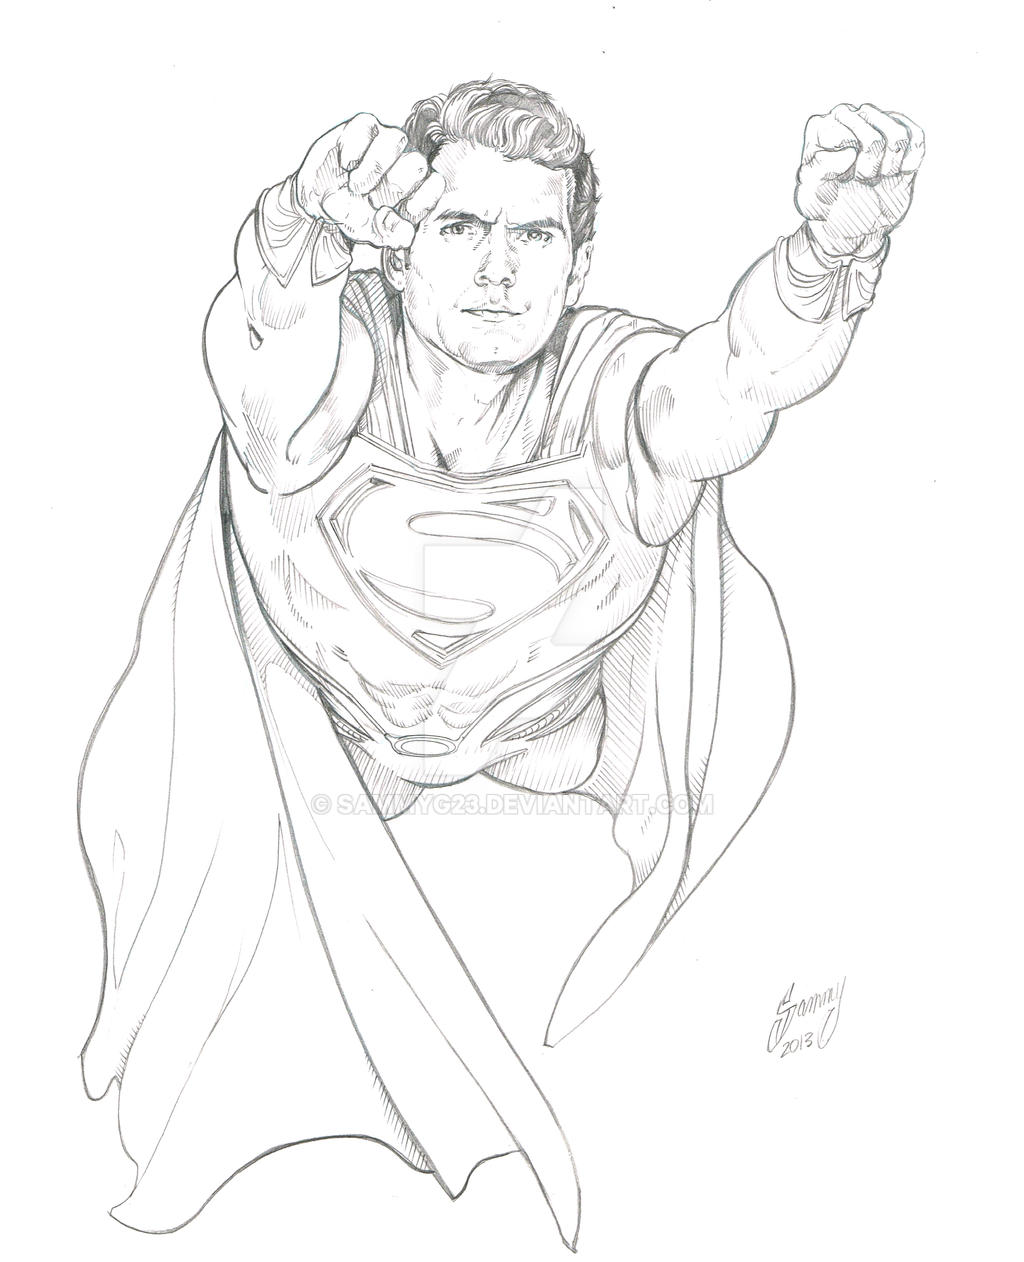 Man of steel finished pencils by sammyg23 on deviantart for Man of steel coloring pages